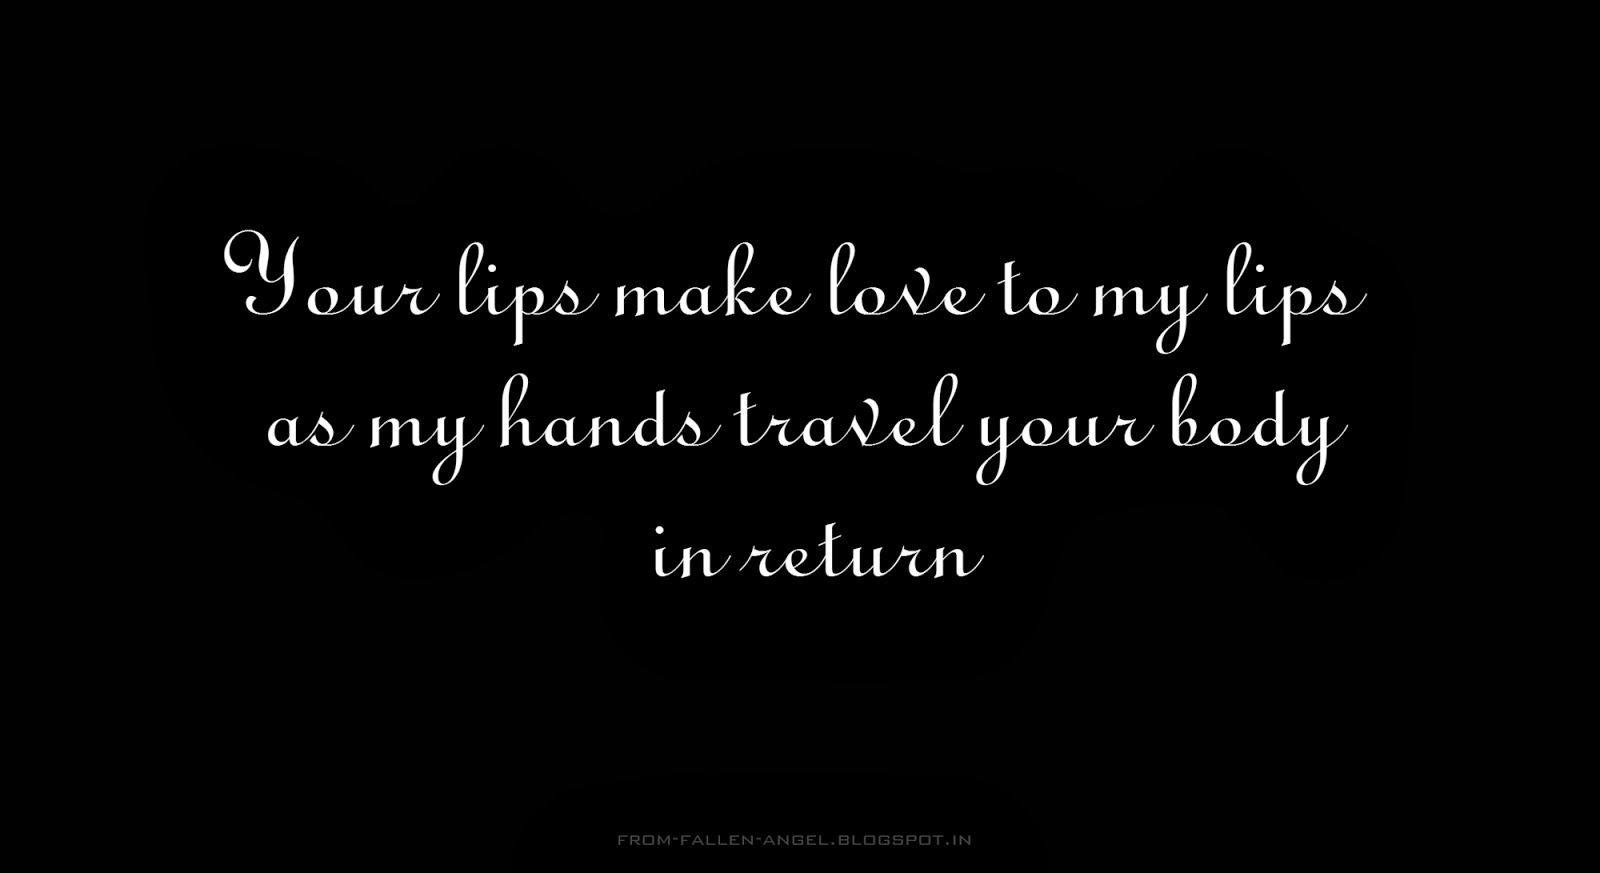 Your lips make love to my lips as my hands travel your body in return